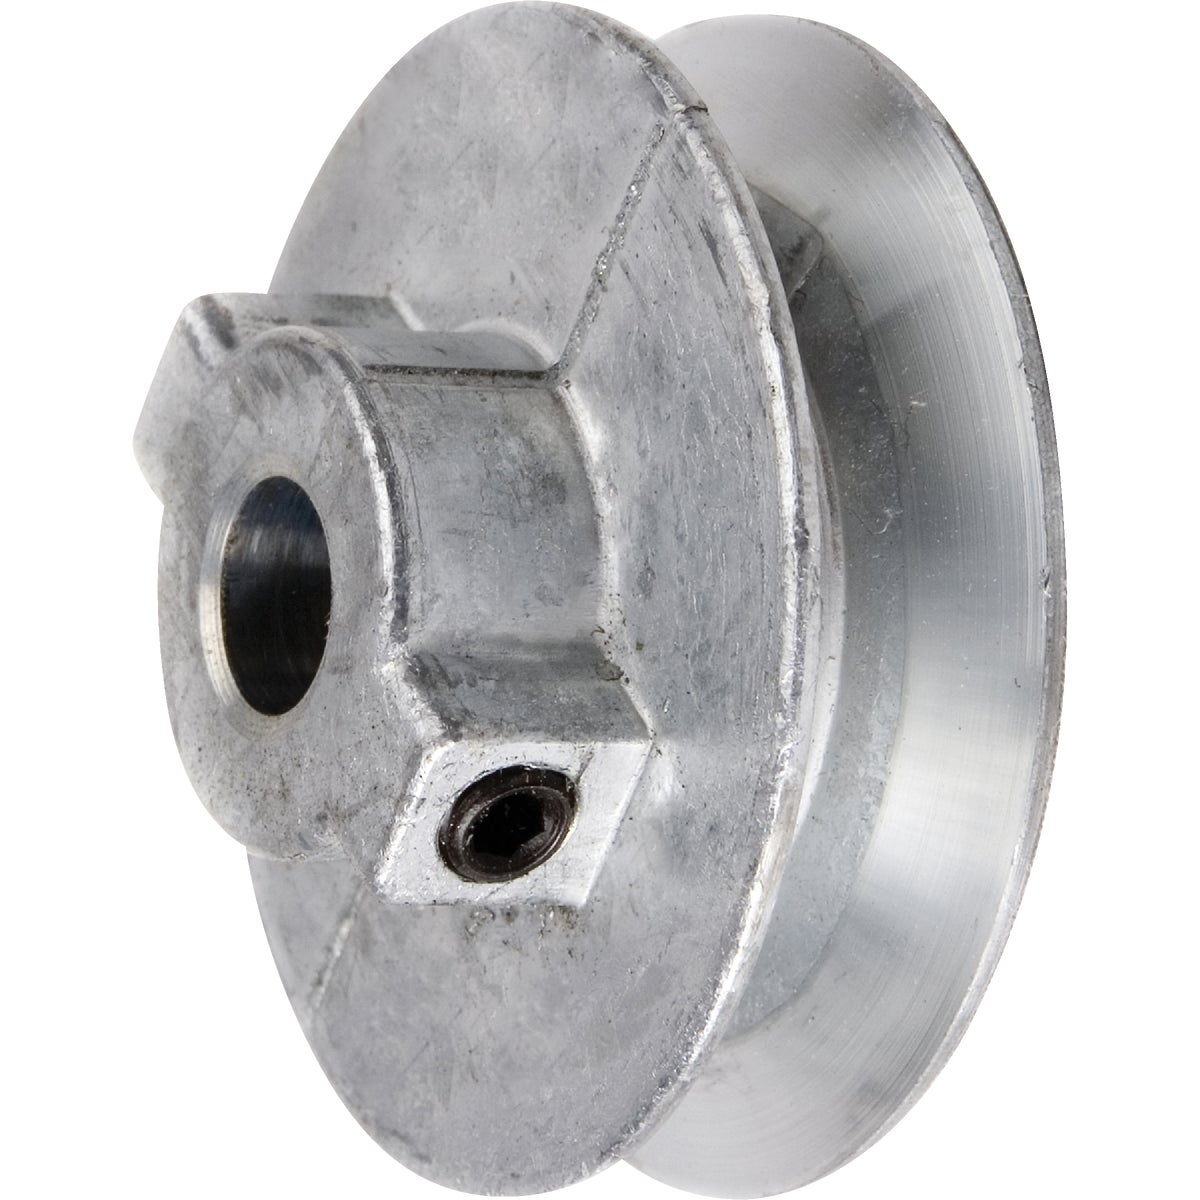 5X5/8 PULLEY - 500A6 by Chicago Die Casting